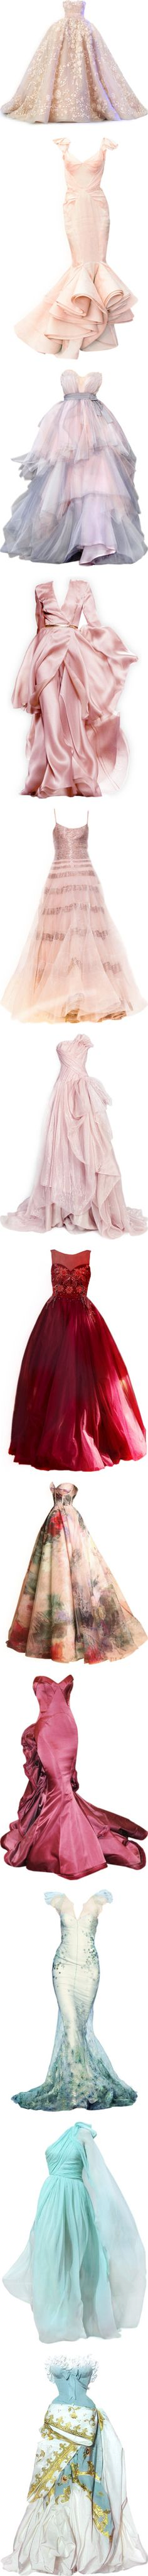 Dream gowns by satinee on Polyvore featuring dresses, gowns, vestidos, long dress, pink ball gown, long pink dress, pink dress, elie saab evening dresses, elie saab dresses and long dresses